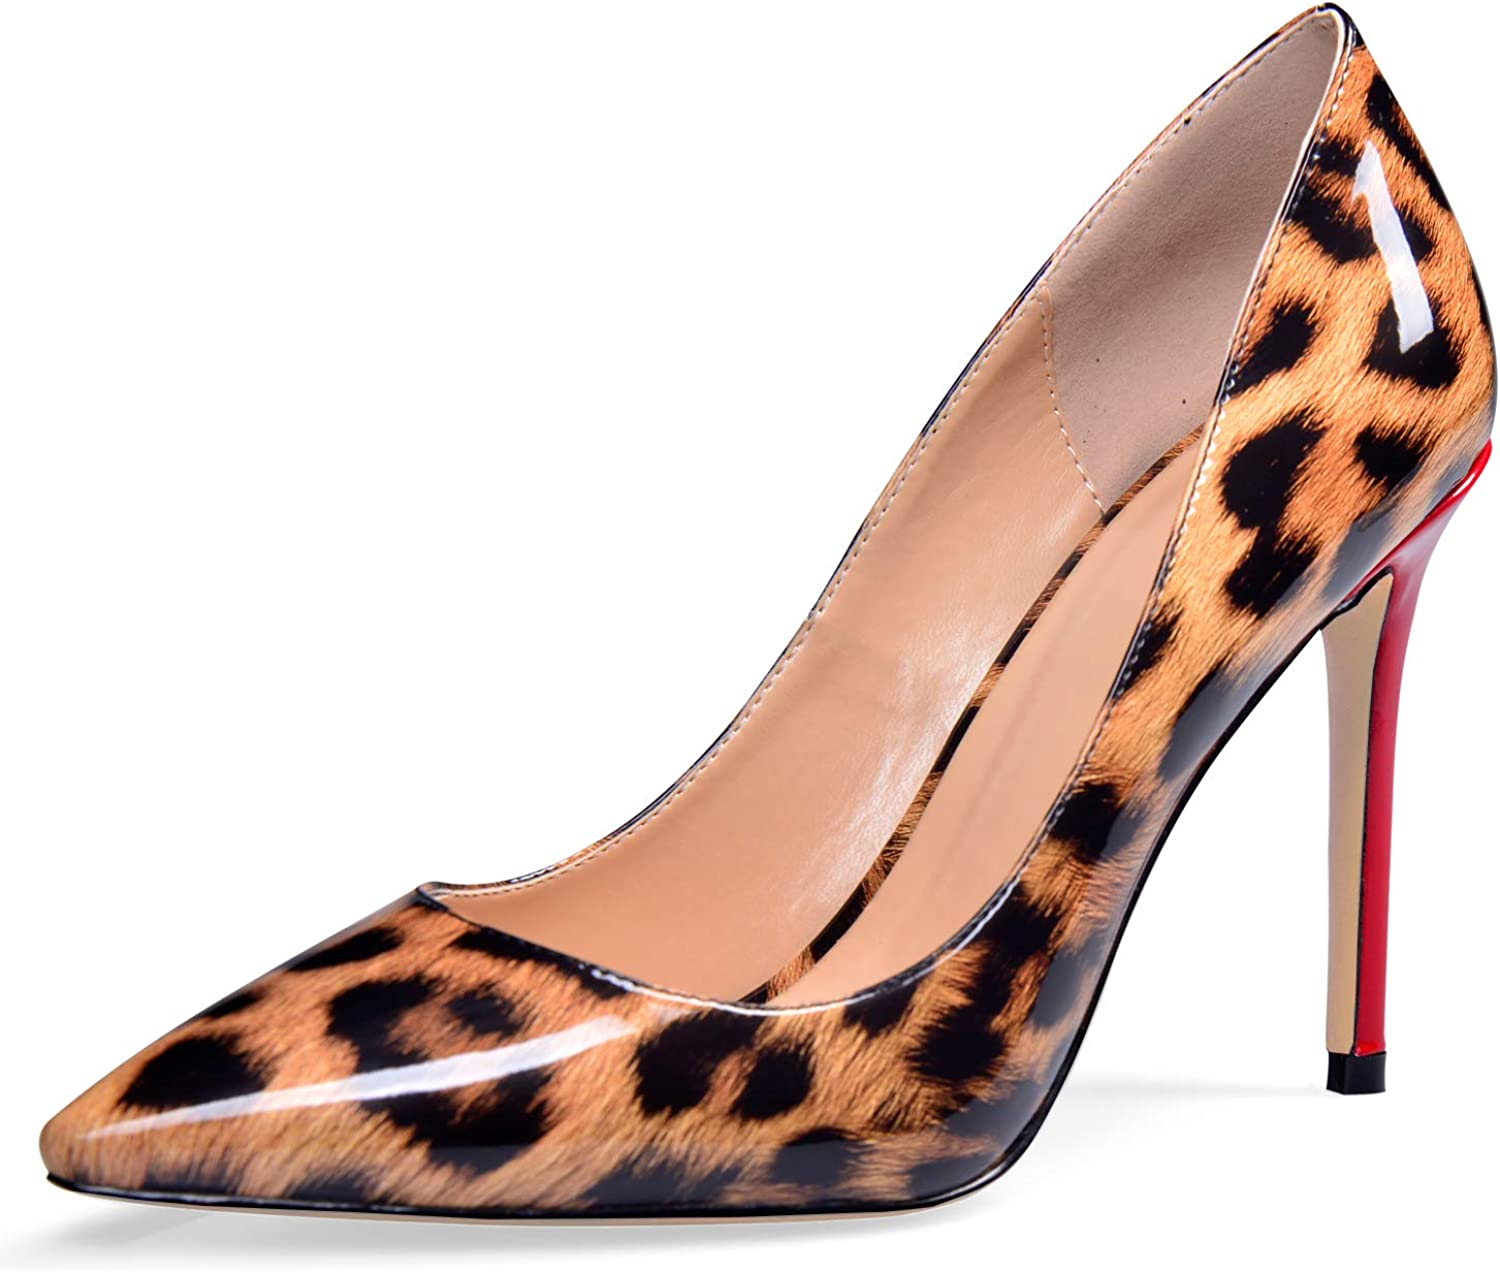 YODEKS Women's Pointed Toe Patent Leather Pumps High Heel Animal Print shoes Leopard shoes US12